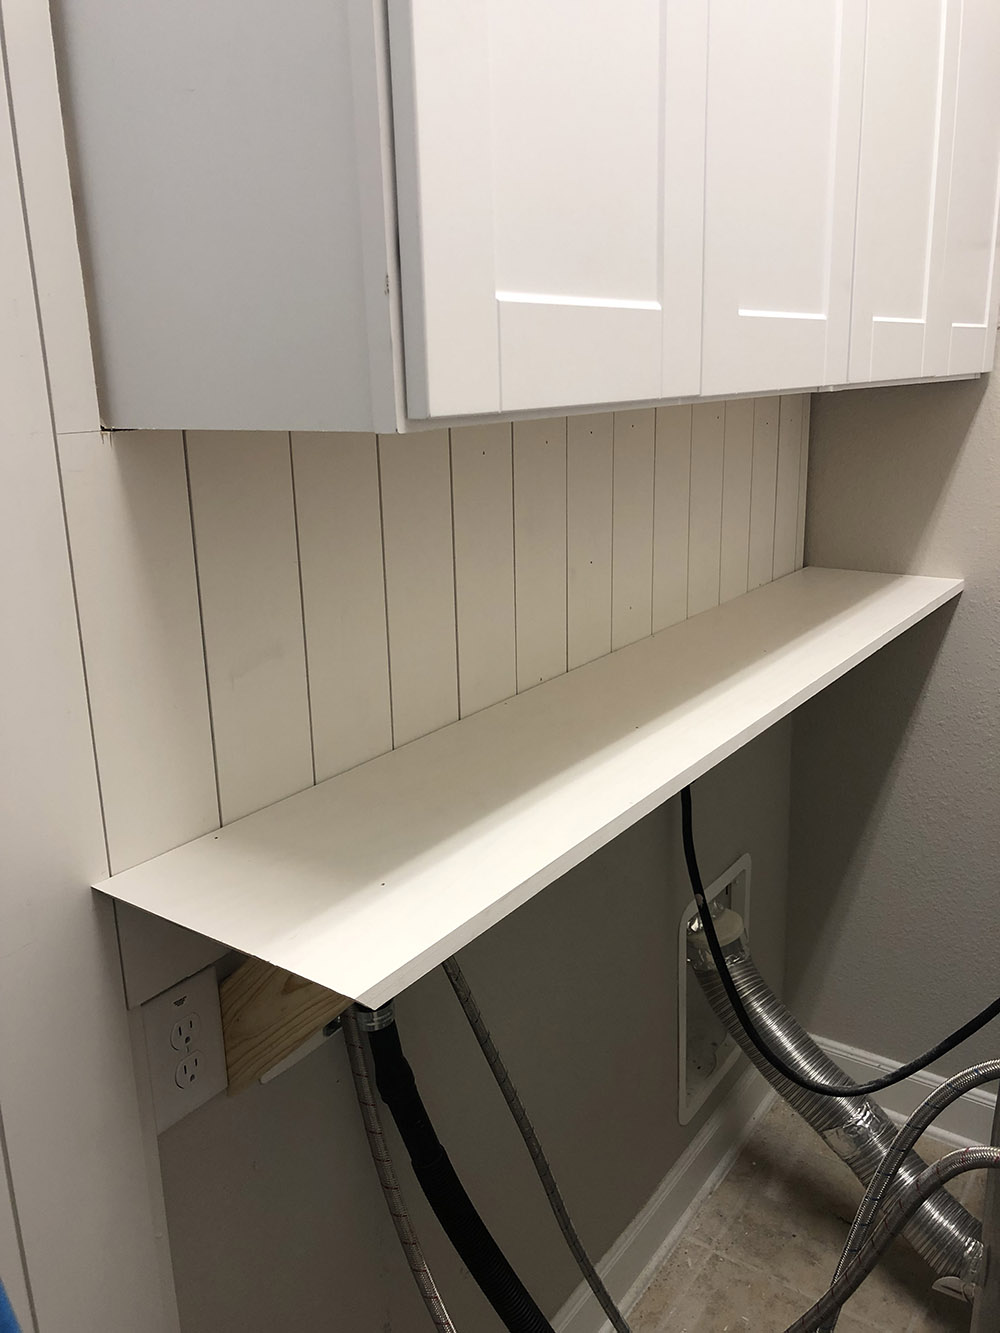 A laundry room wall with a shelf supported by four angled wood supports.